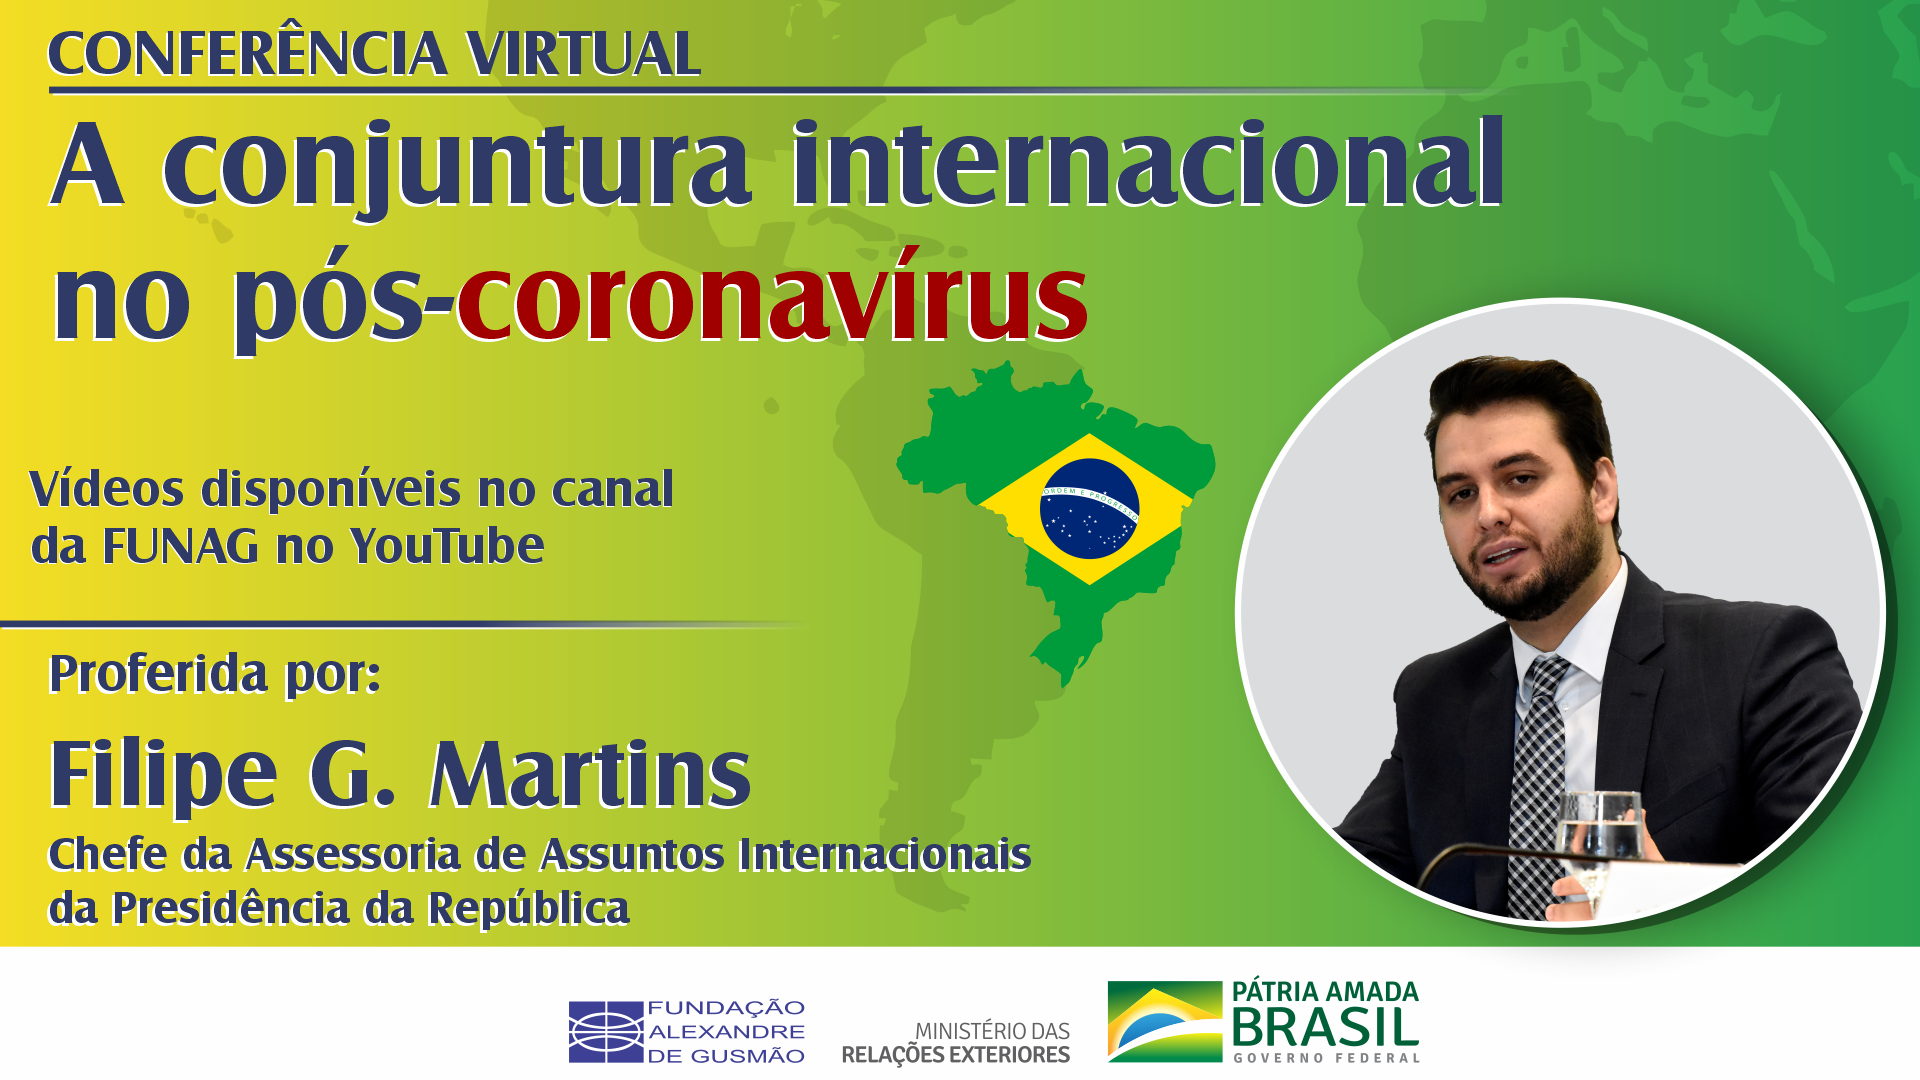 Watch the conference with Filipe G. Martins, Head of the Special Advisory for International Affairs of the Presidency of the Republic